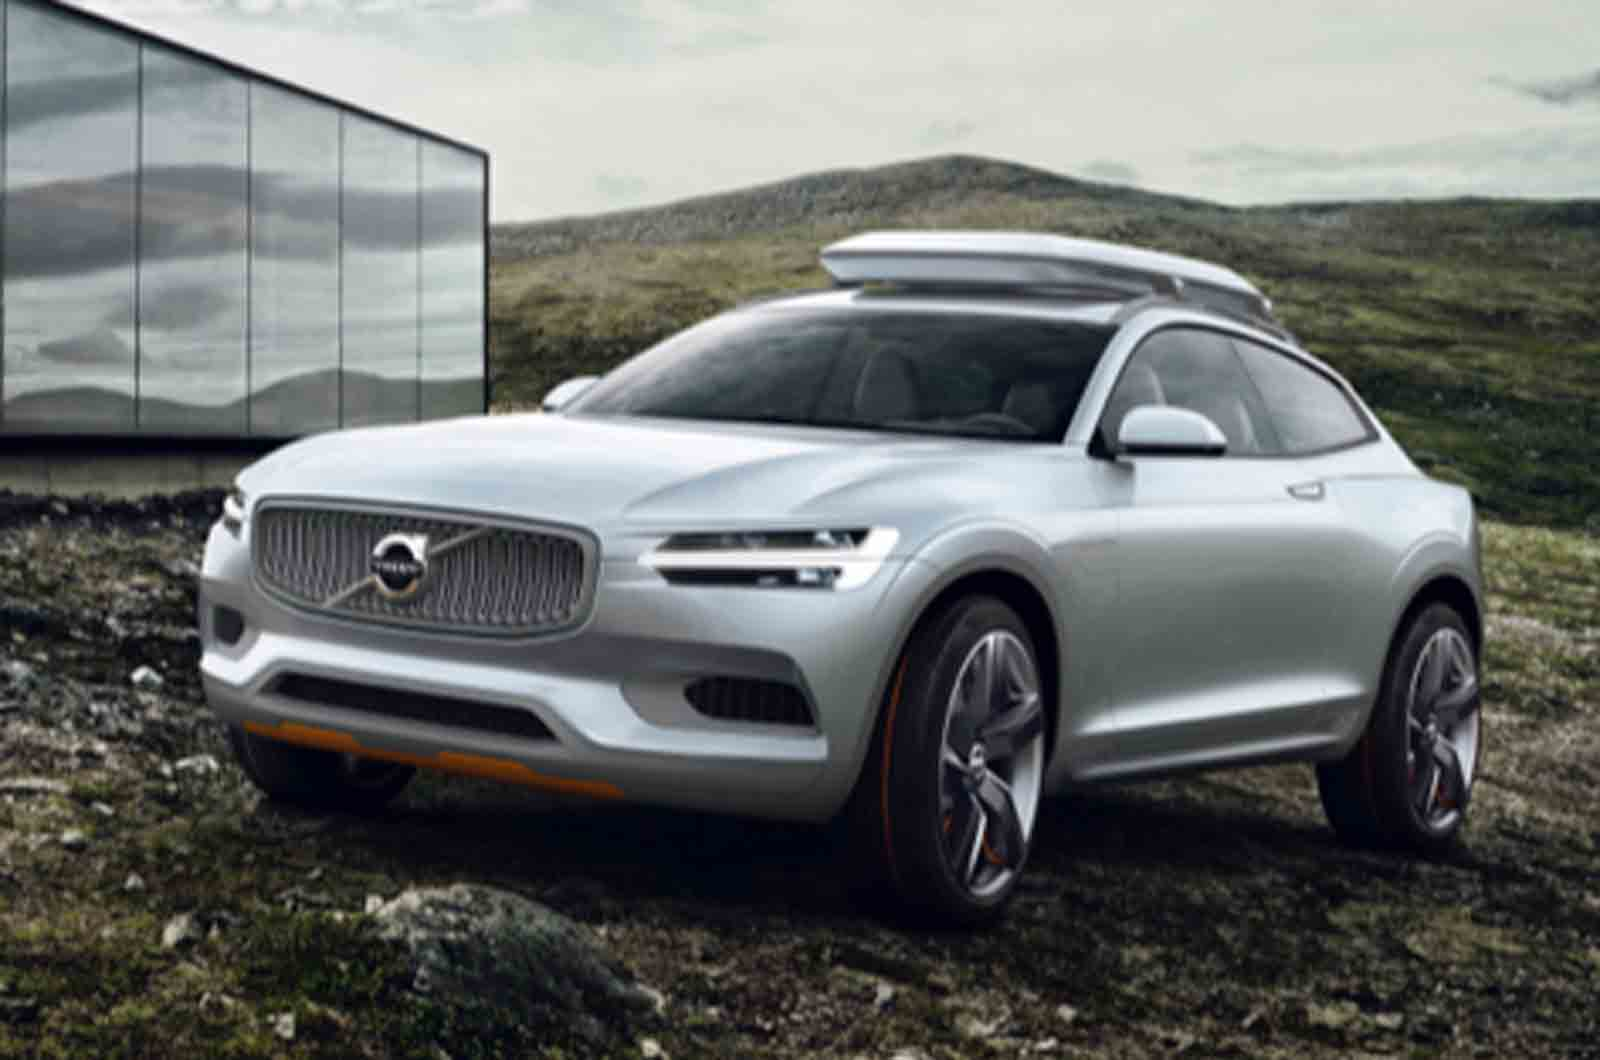 New Volvo Concept Xc Suv Leaked Autocar India